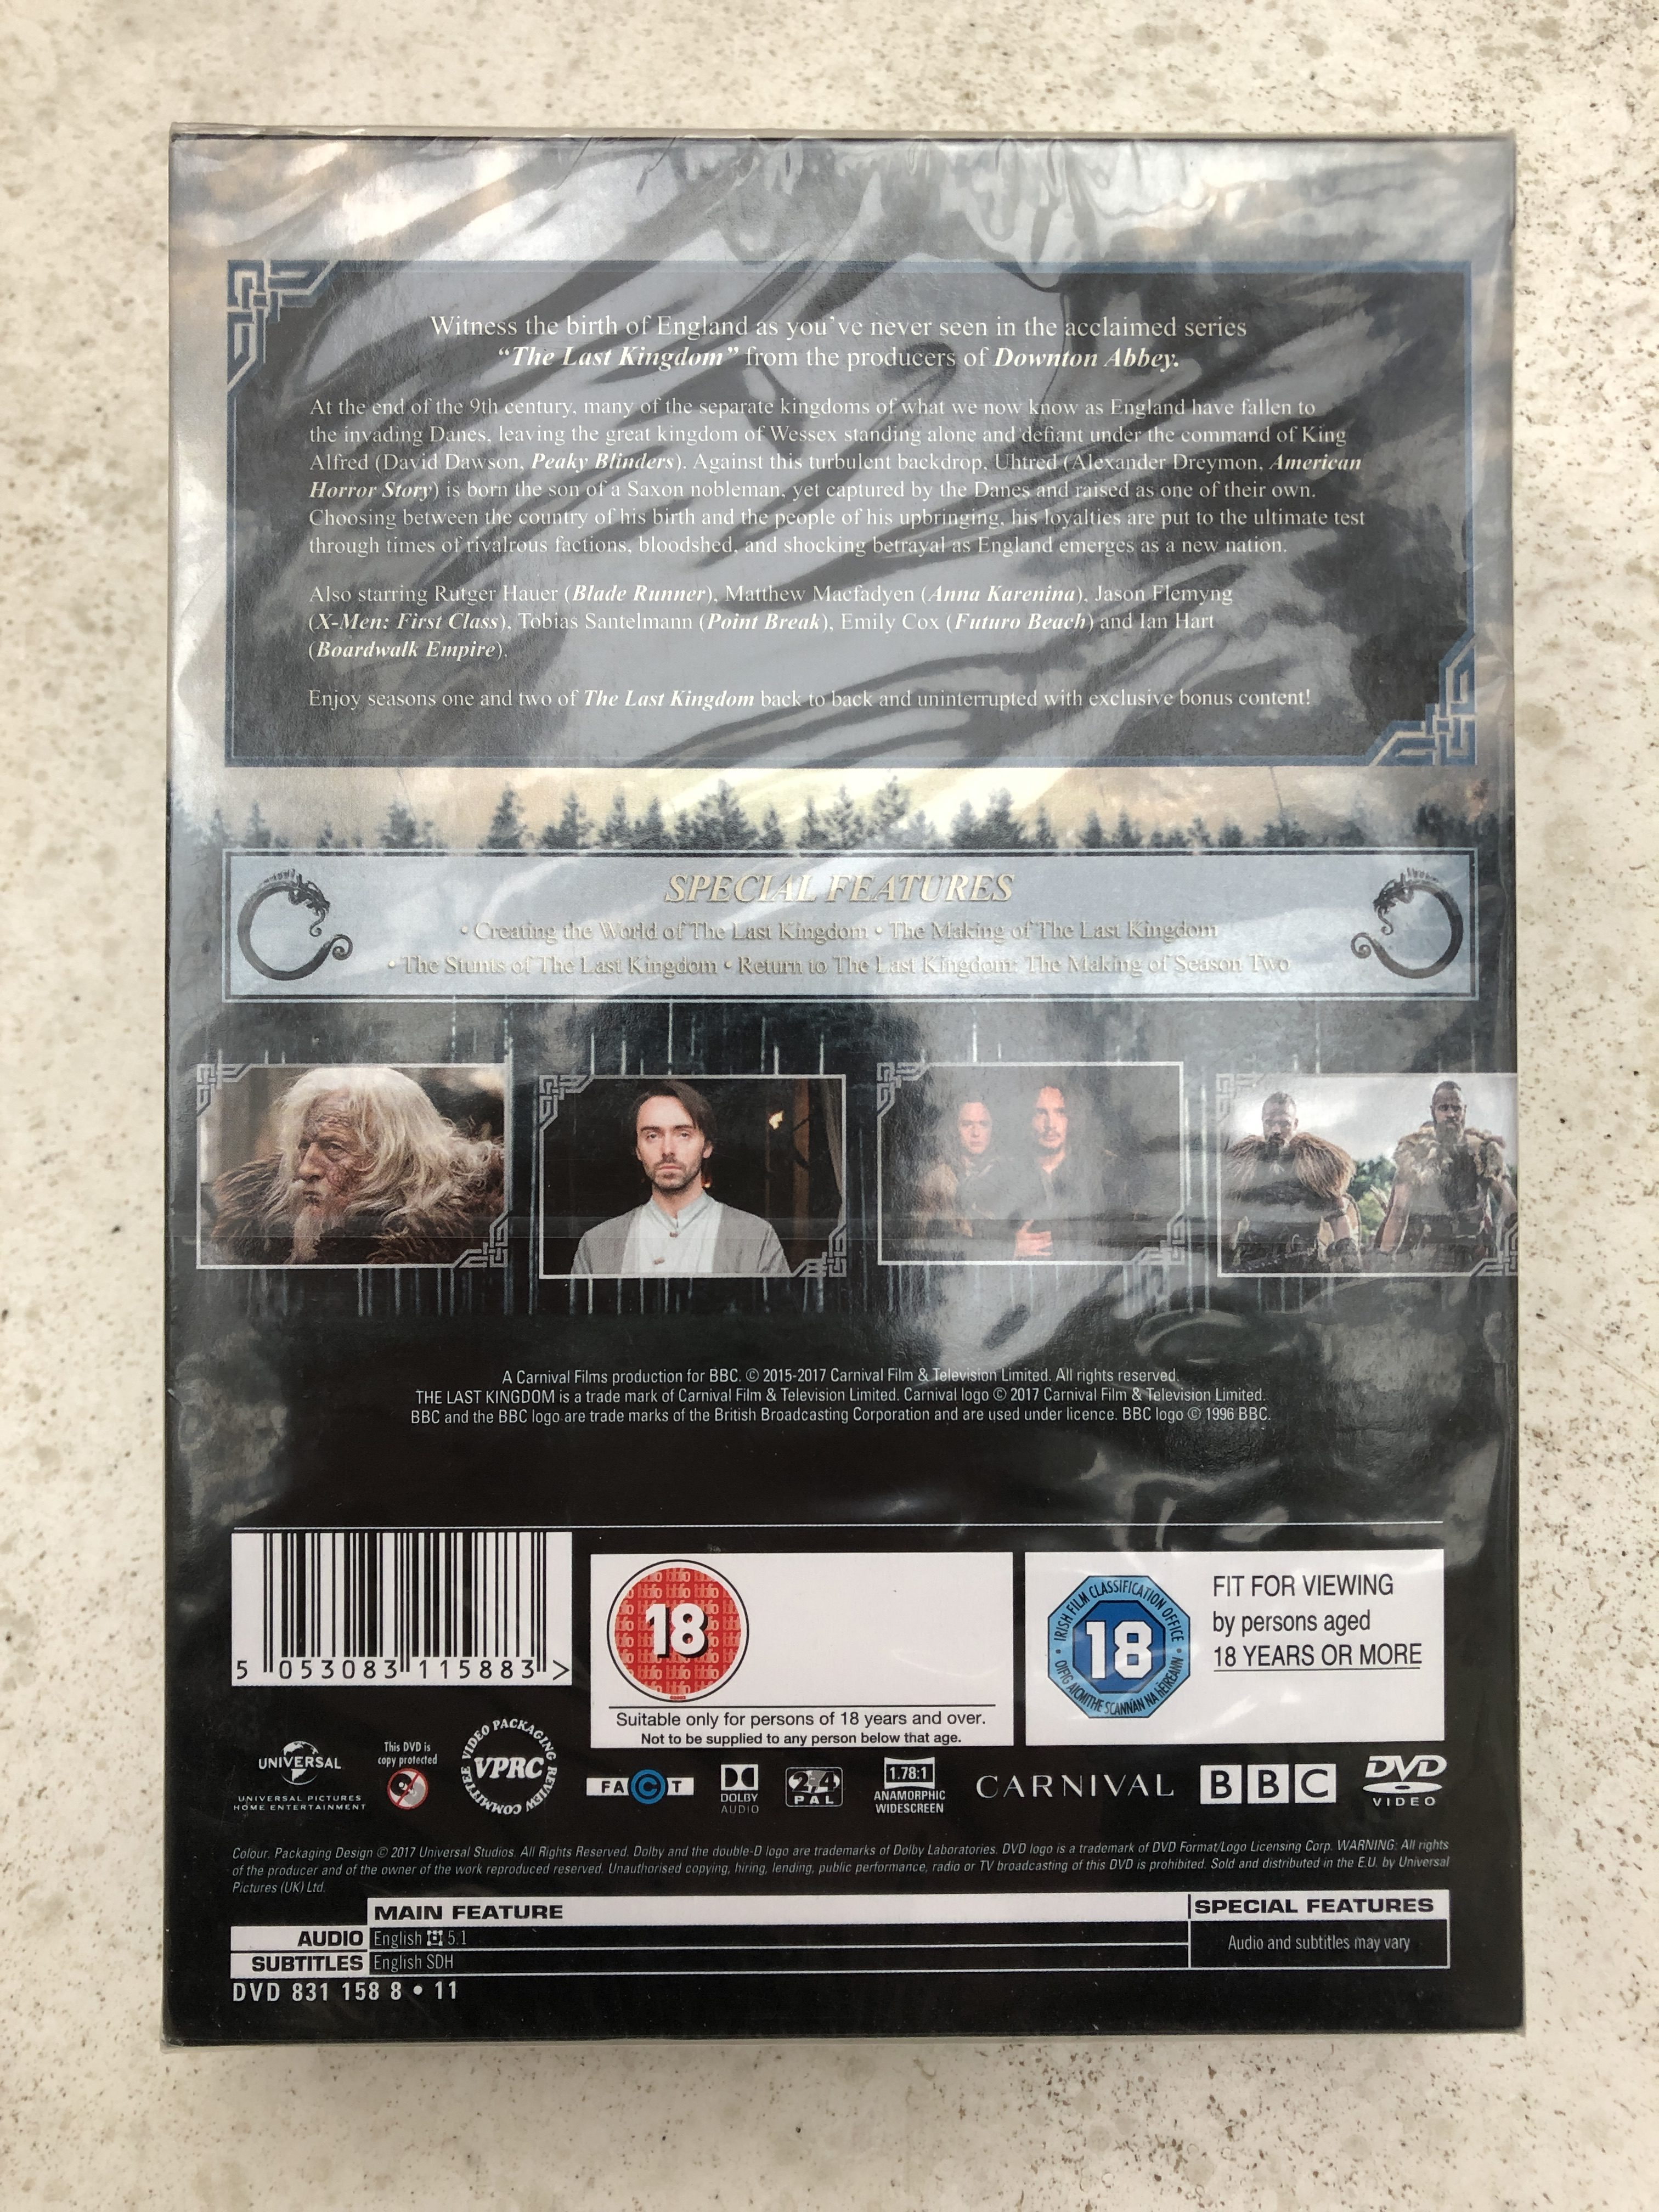 Last Kingdom DVD back